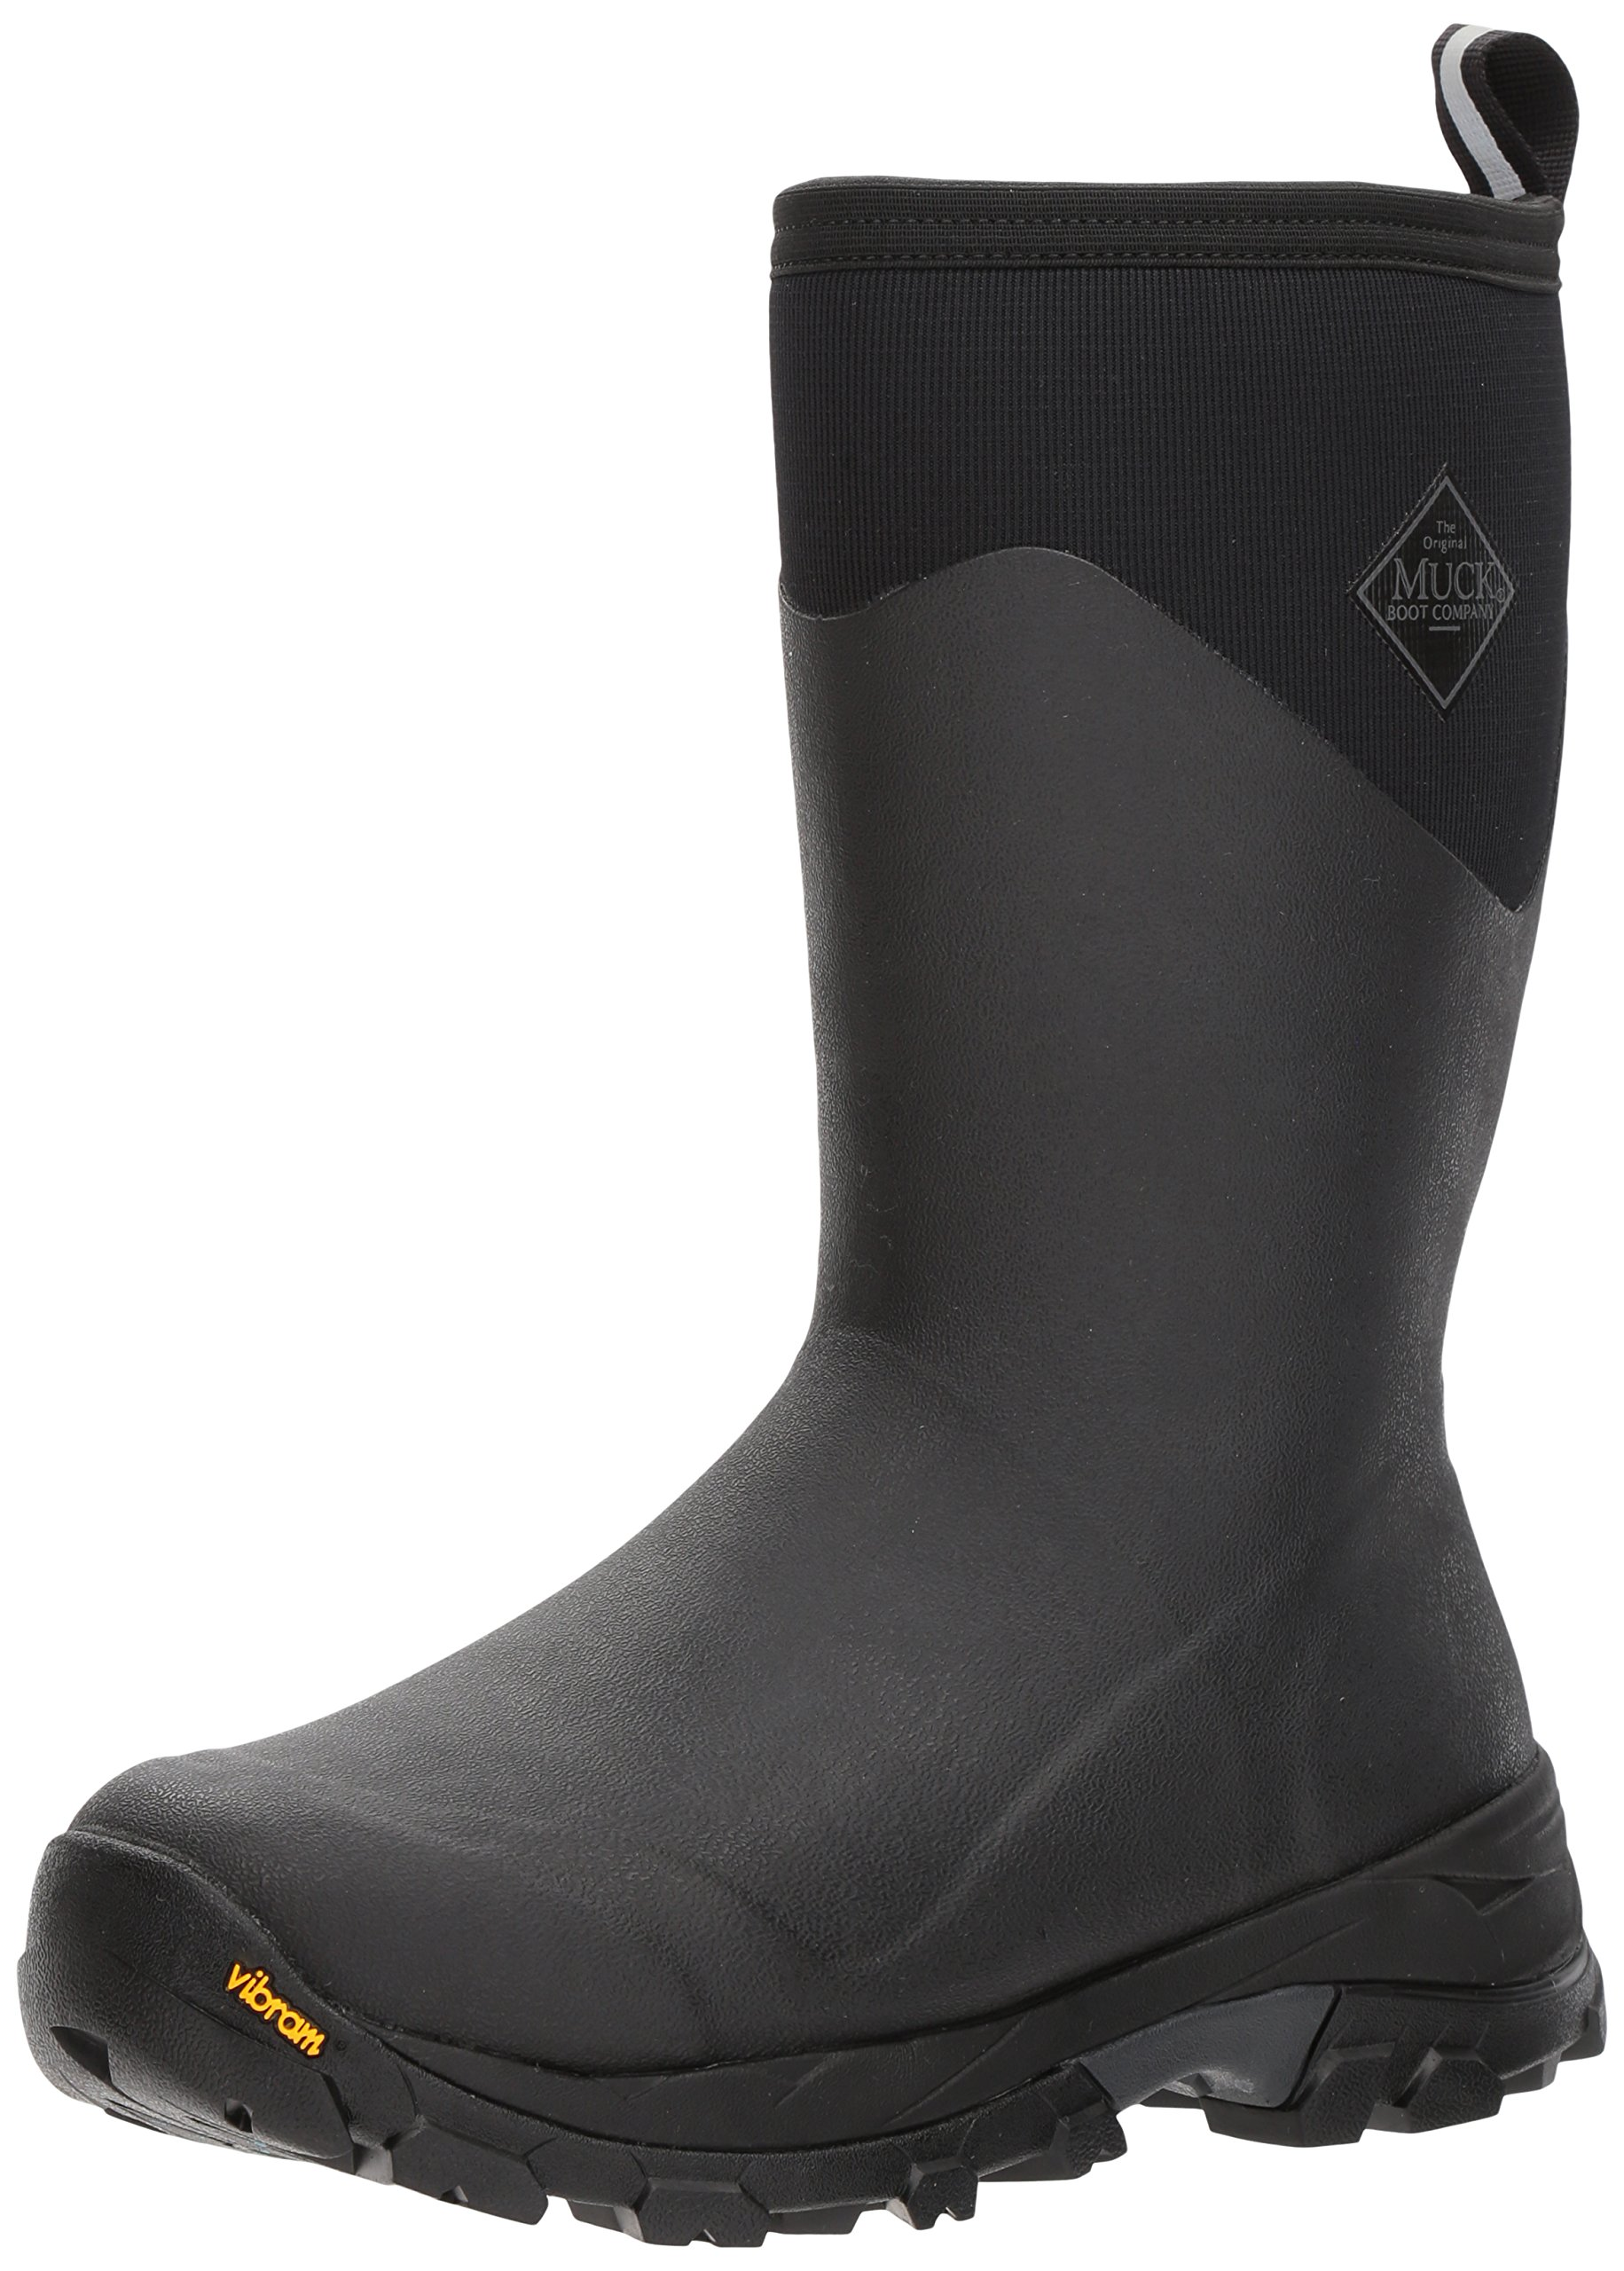 Muck Extreme Conditions Mid Height Outsole